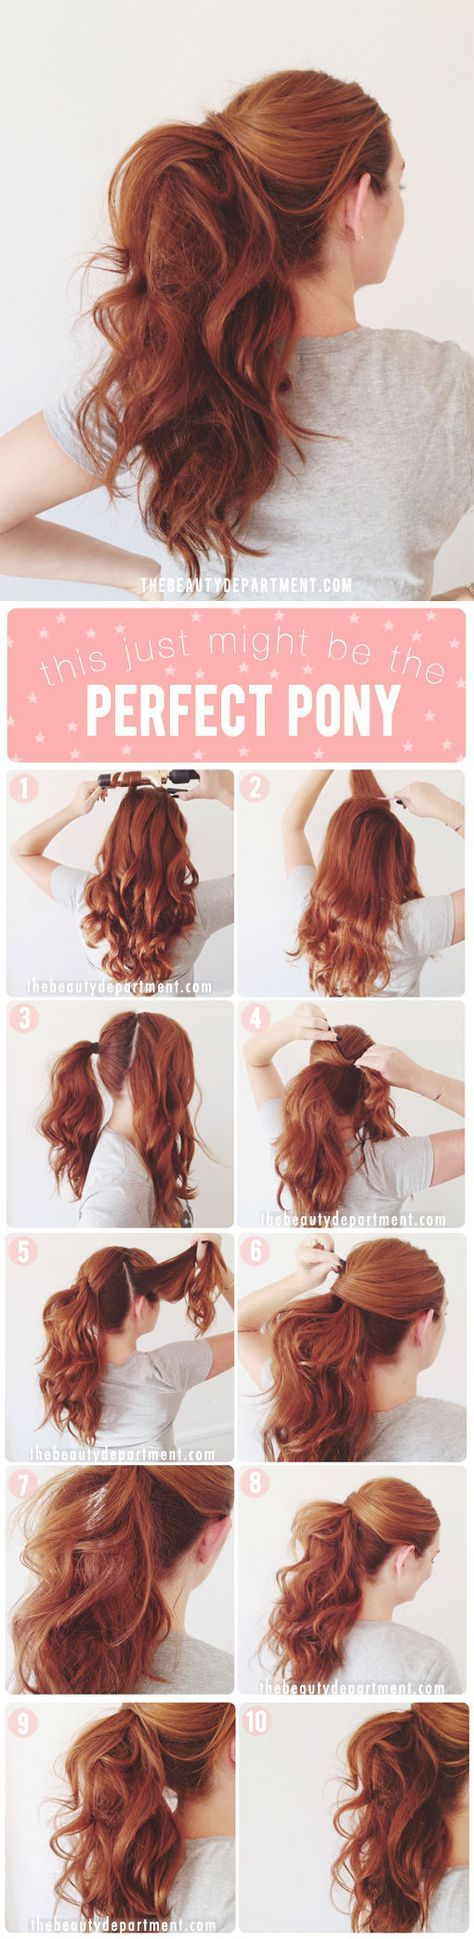 How to achieve the perfect pony